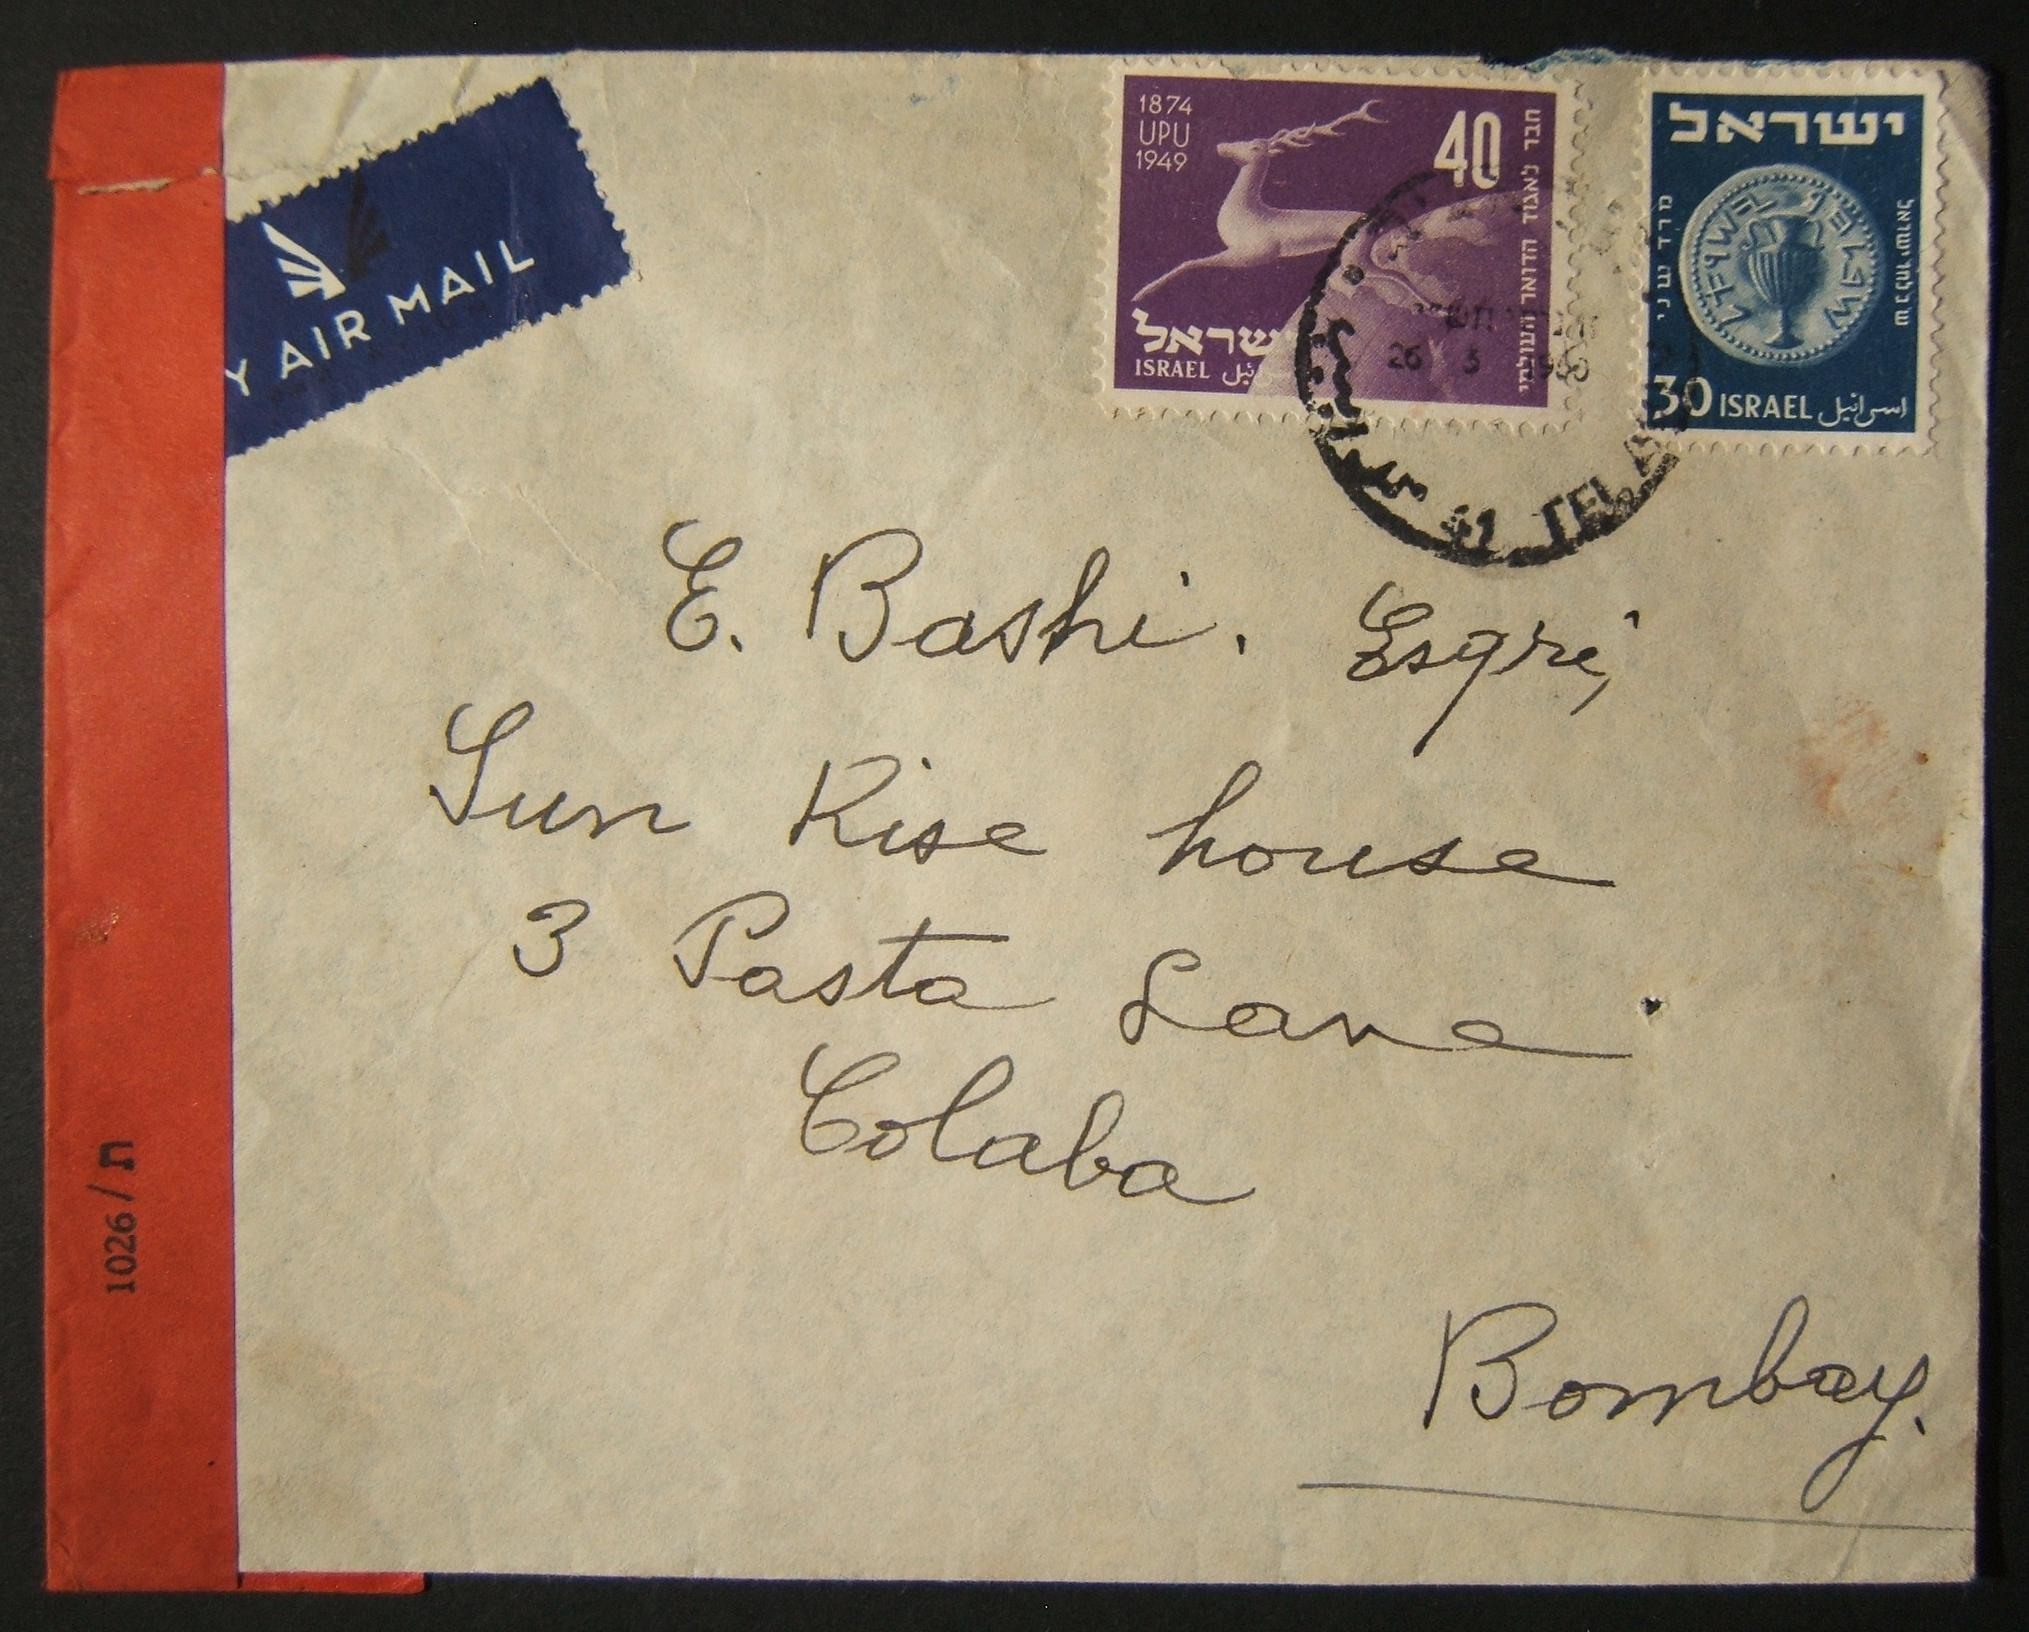 1950 UPU / rates & routes: 26-3-1950 '1st day' airmail cover ex TLV to BOMBAY franked 70pr at the FA-2a period rate using mix of 40pr (Ba27) on 1st day of use + 30pr 1949 2nd Coina